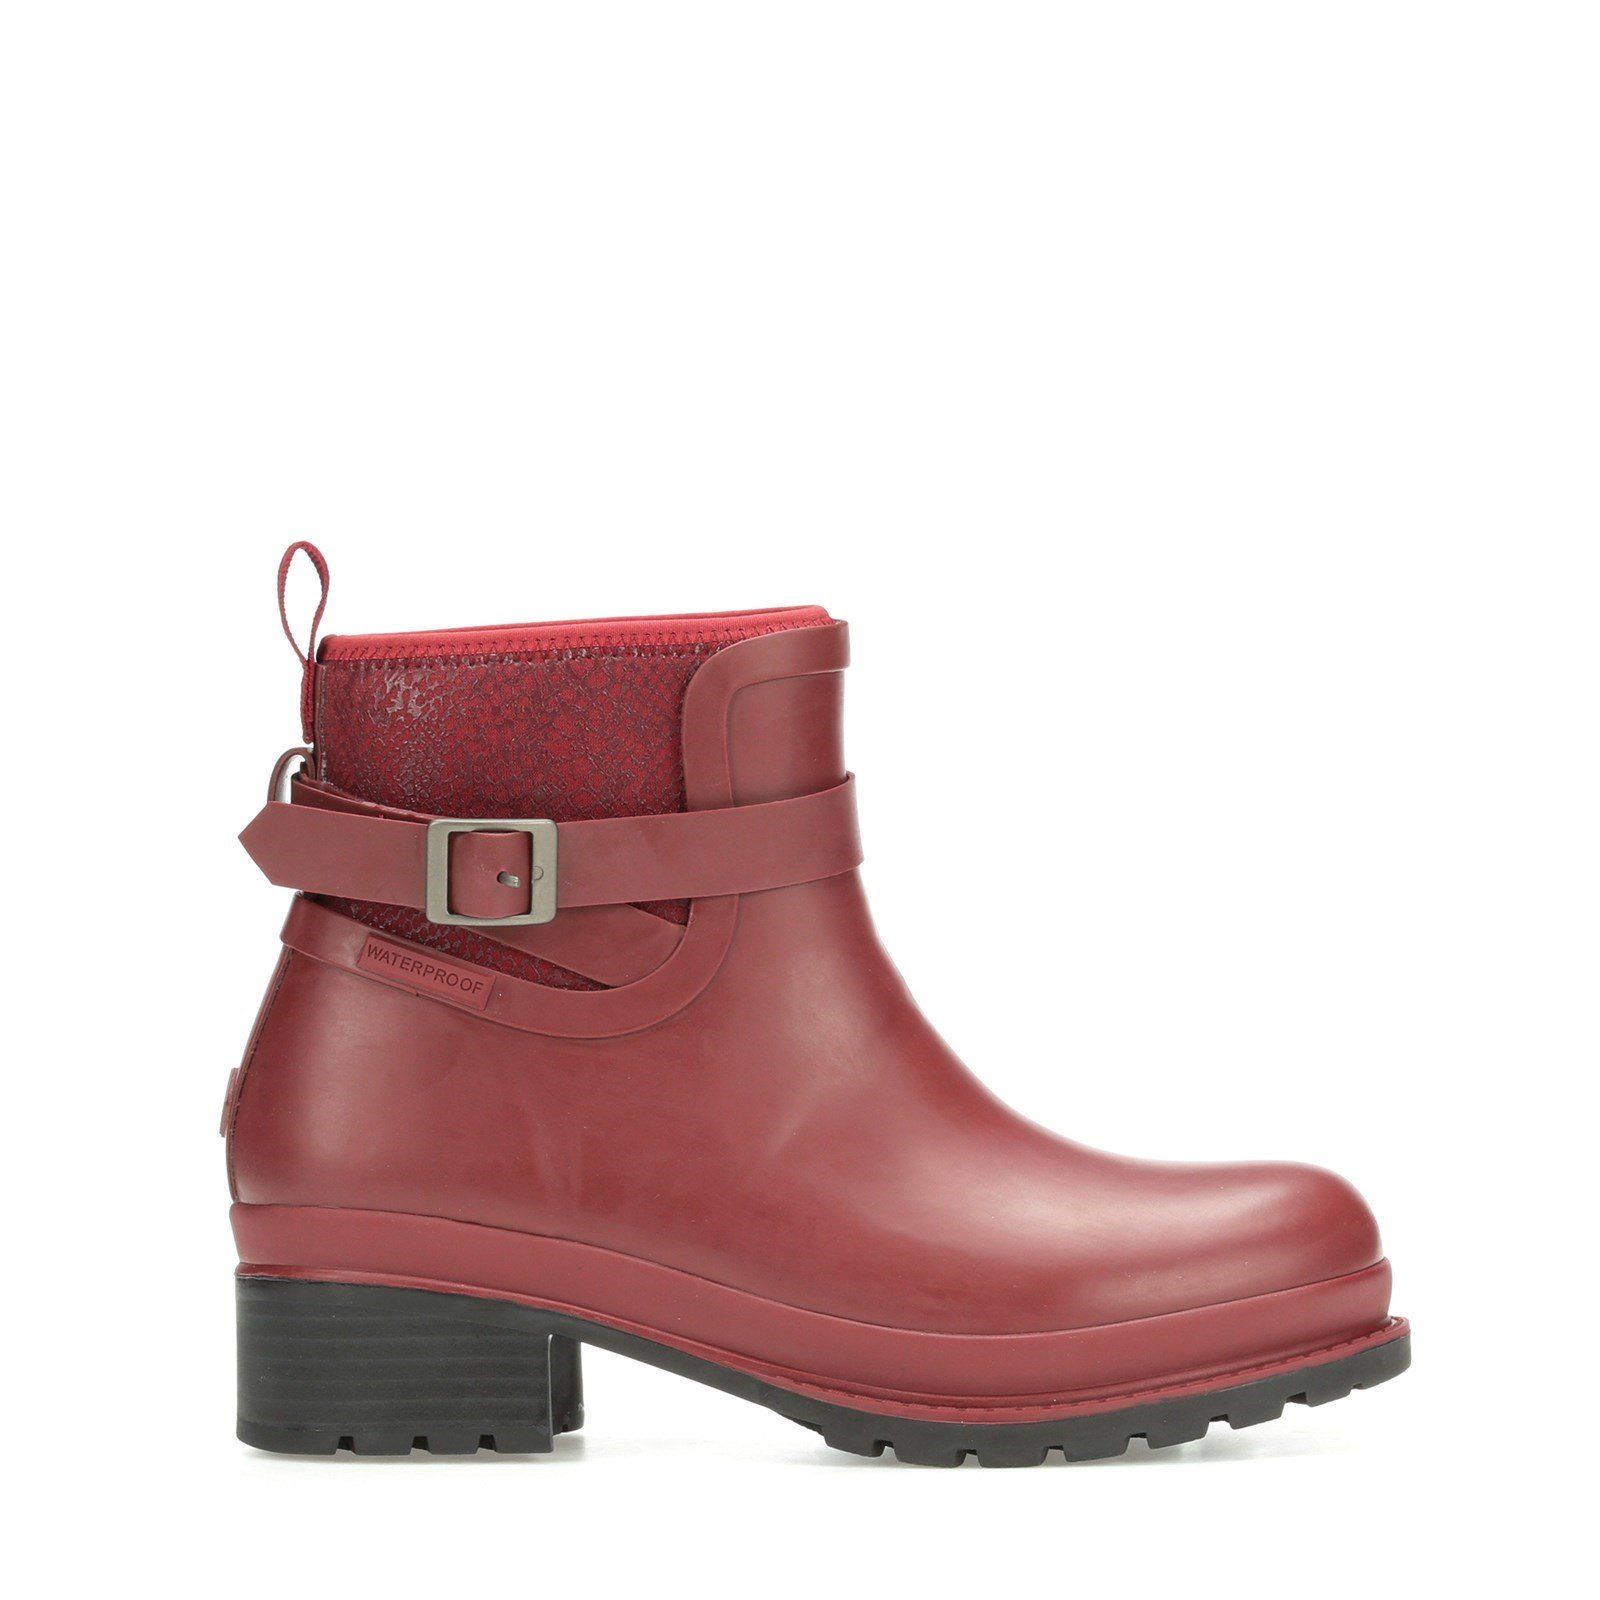 Muck Boots Women's Liberty Rubber Ankle Boots Various Colours 31816 - Cordovan 8